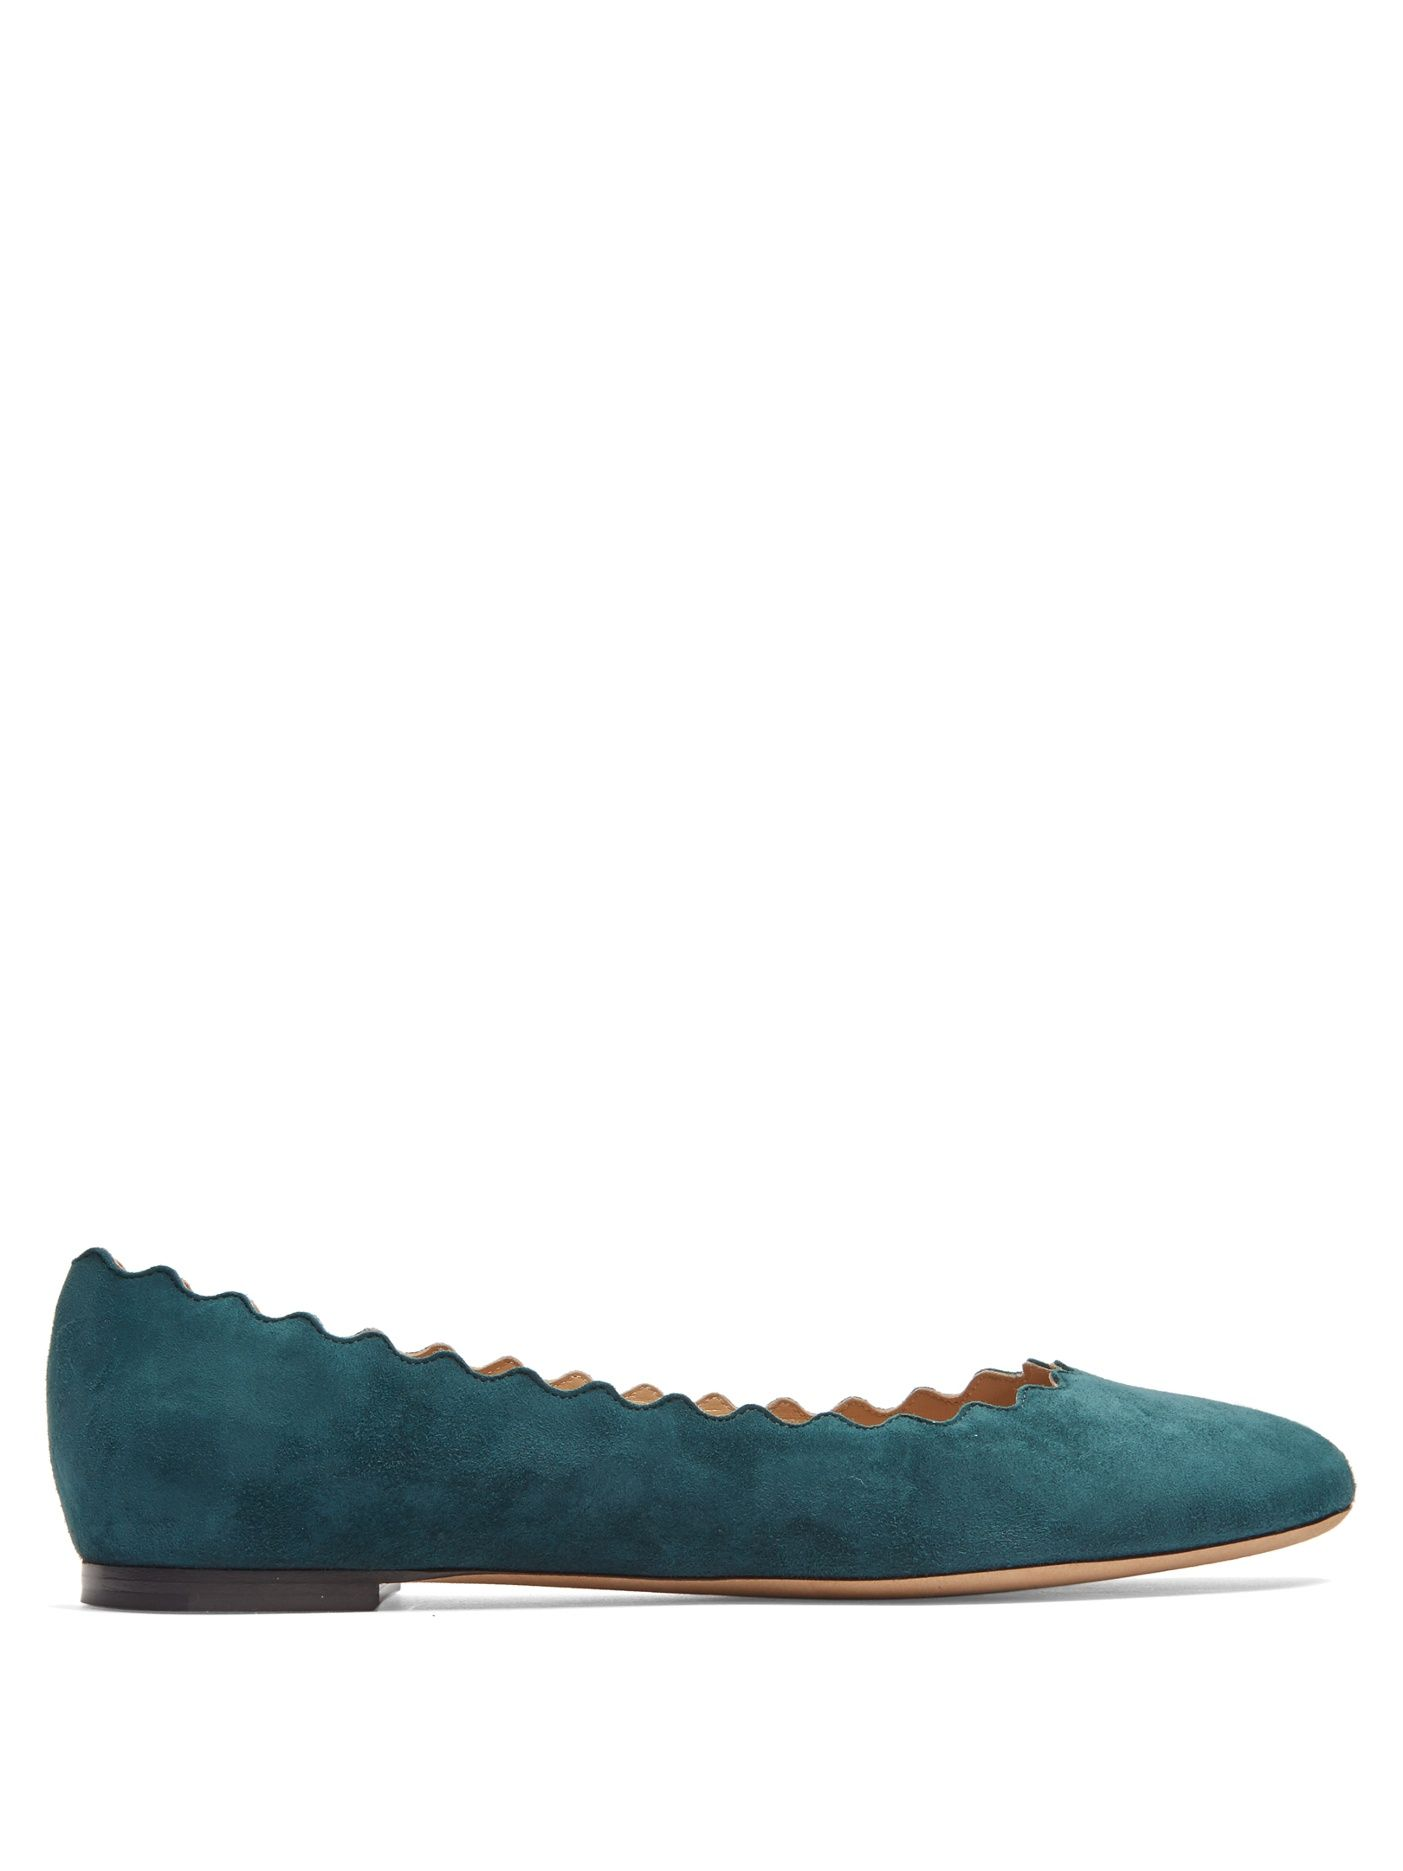 808f7433b2f Click here to buy Chloé Lauren scallop-edged suede flats at  MATCHESFASHION.COM